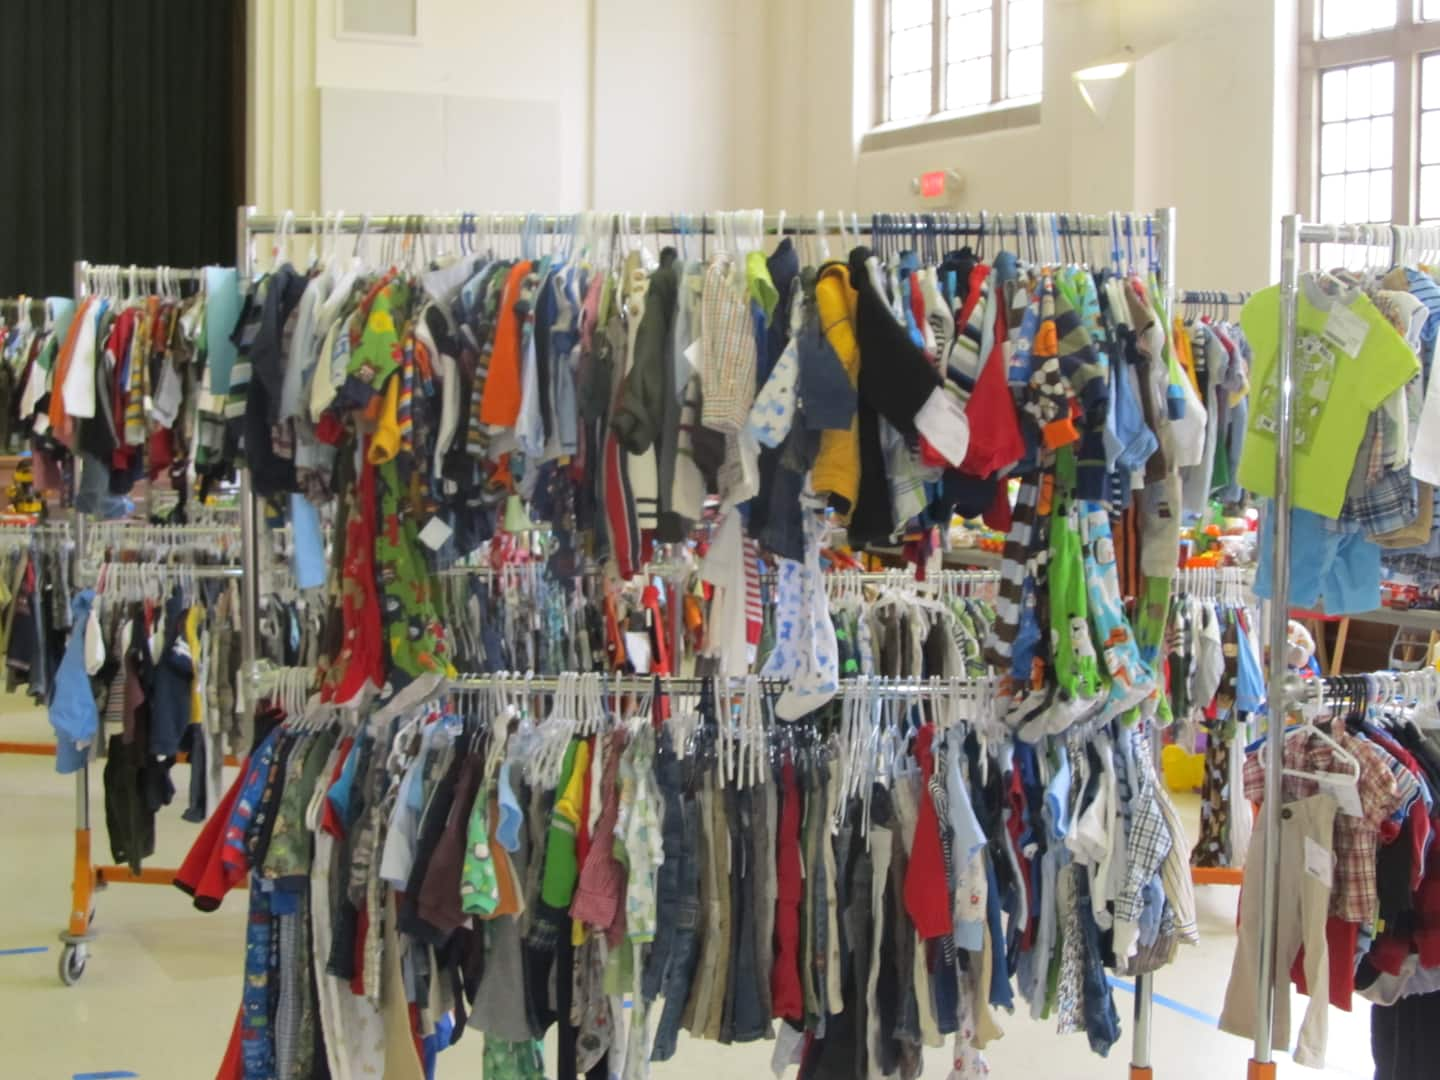 Consignment sales can offer bargains for shoppers looking for children's clothing, toys, books and more. (Photo by Courtney St. Onge)